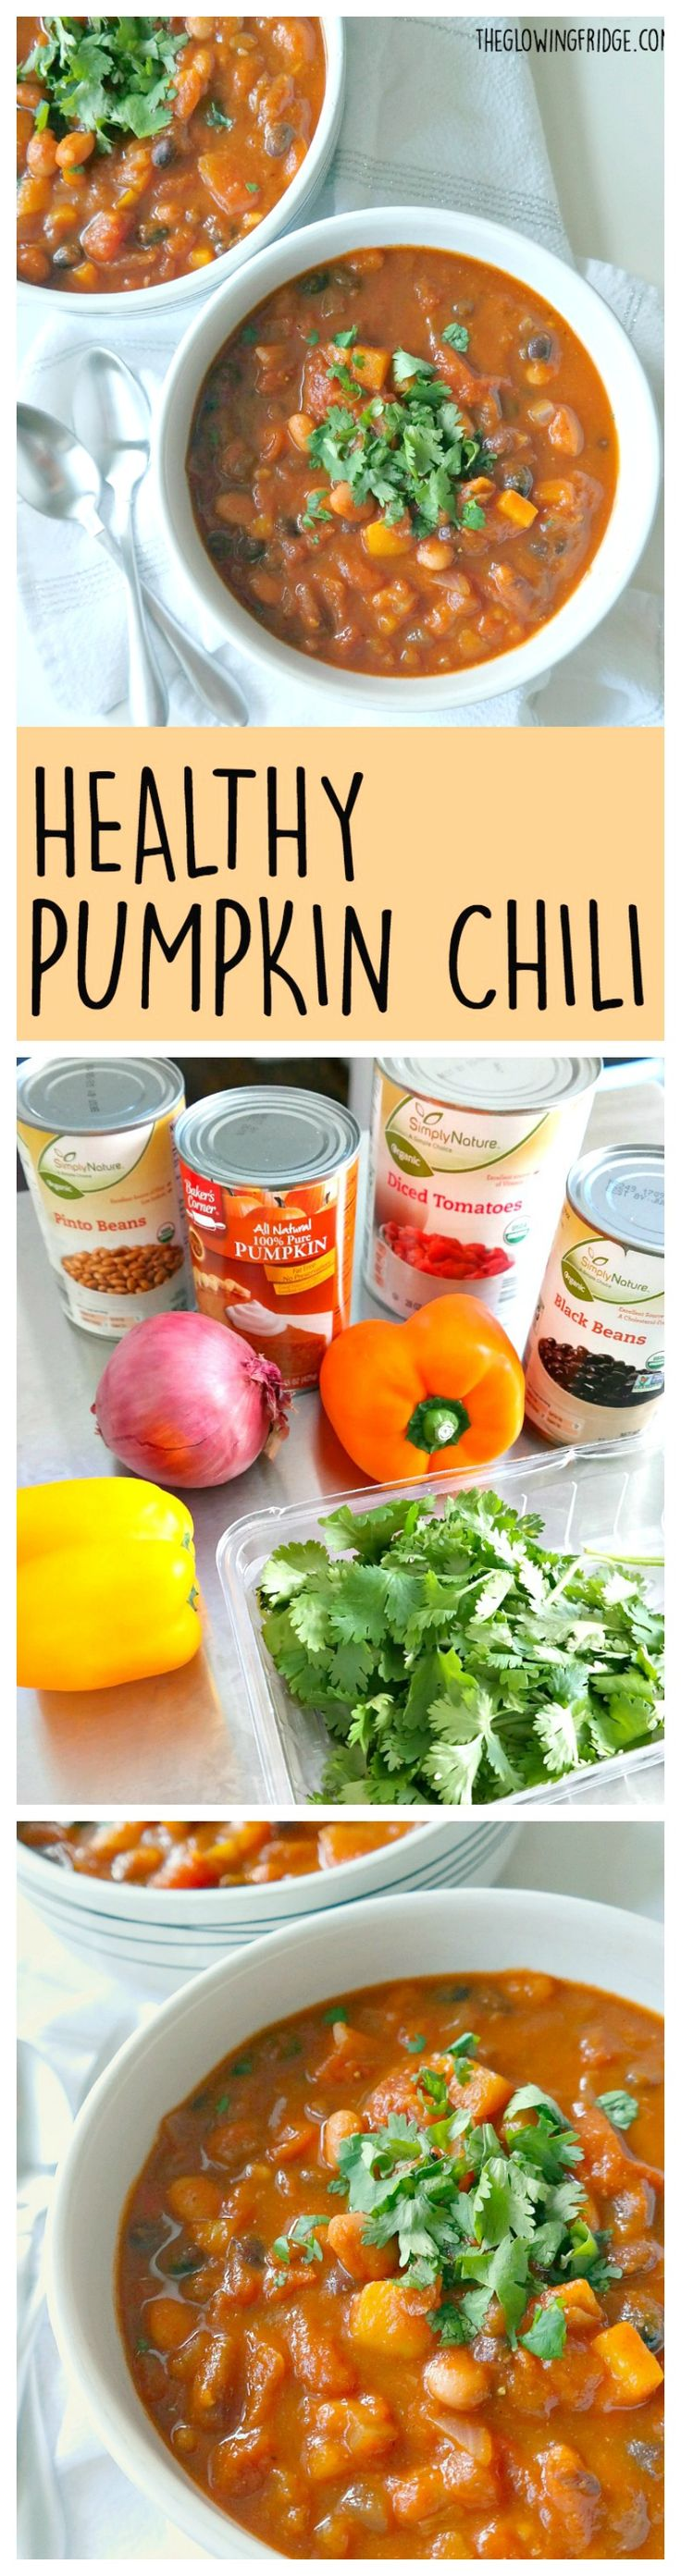 Healthy Pumpkin Chili - vegan and gluten free - hearty, creamy, rich and ready in 35 minutes! This savory pumpkin chili is warming, nourishing and festively healthy. From The Glowing Fridge.